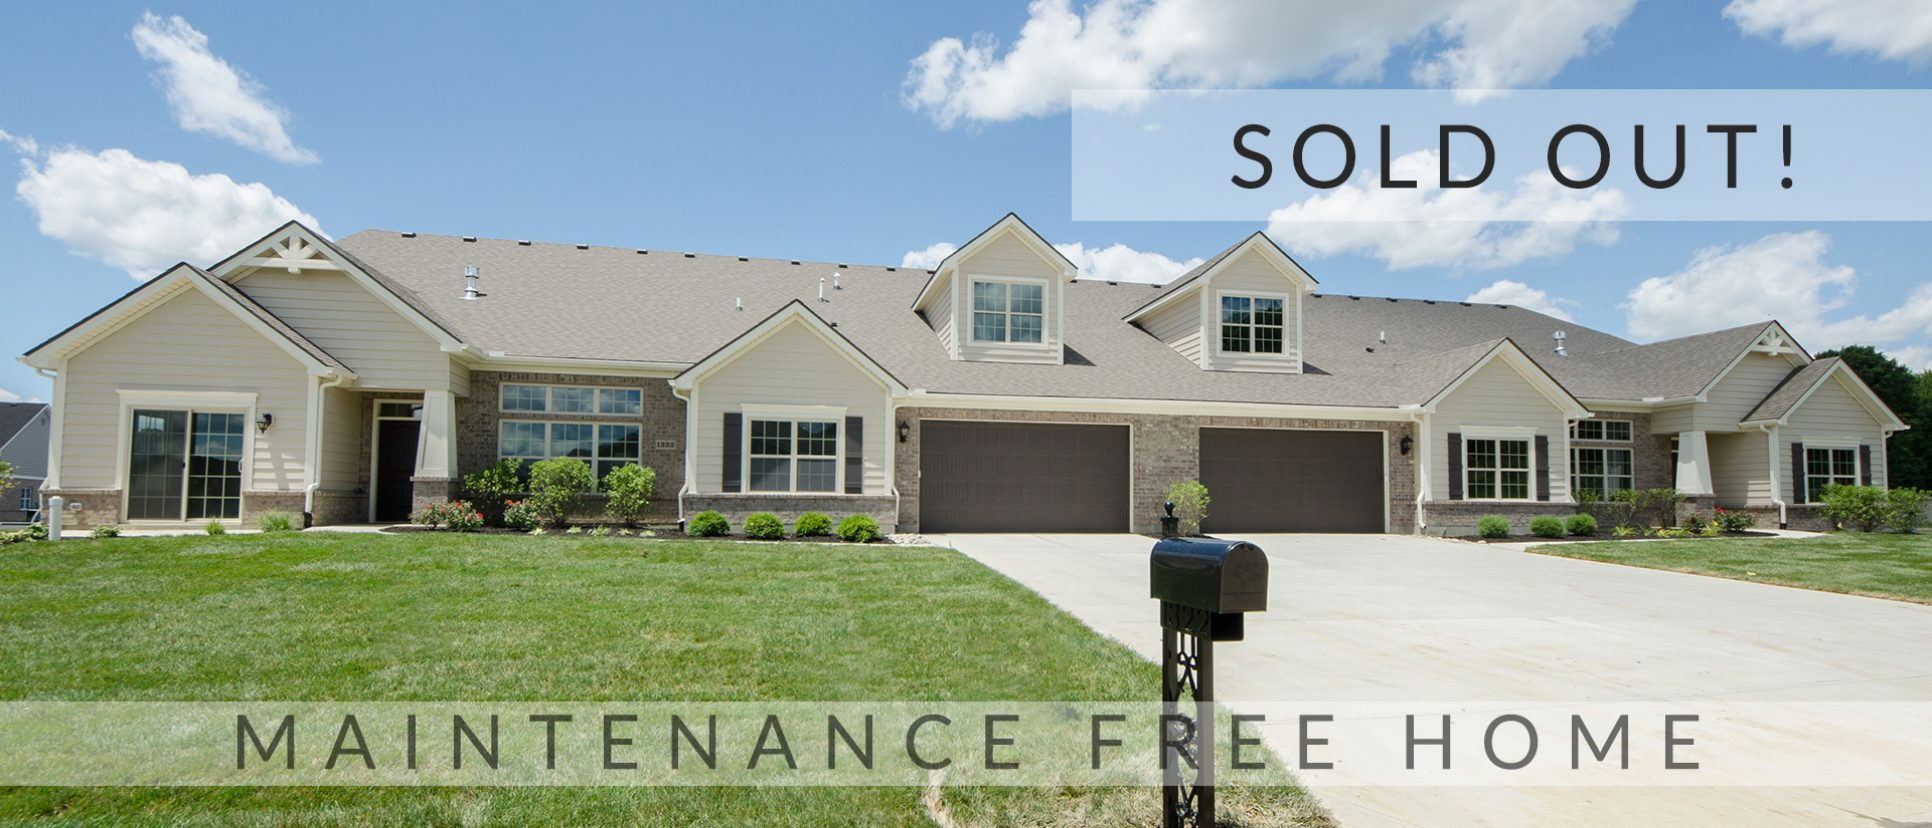 The sold out Sheffield condos in Soraya Farms. Custom built by Design Homes.